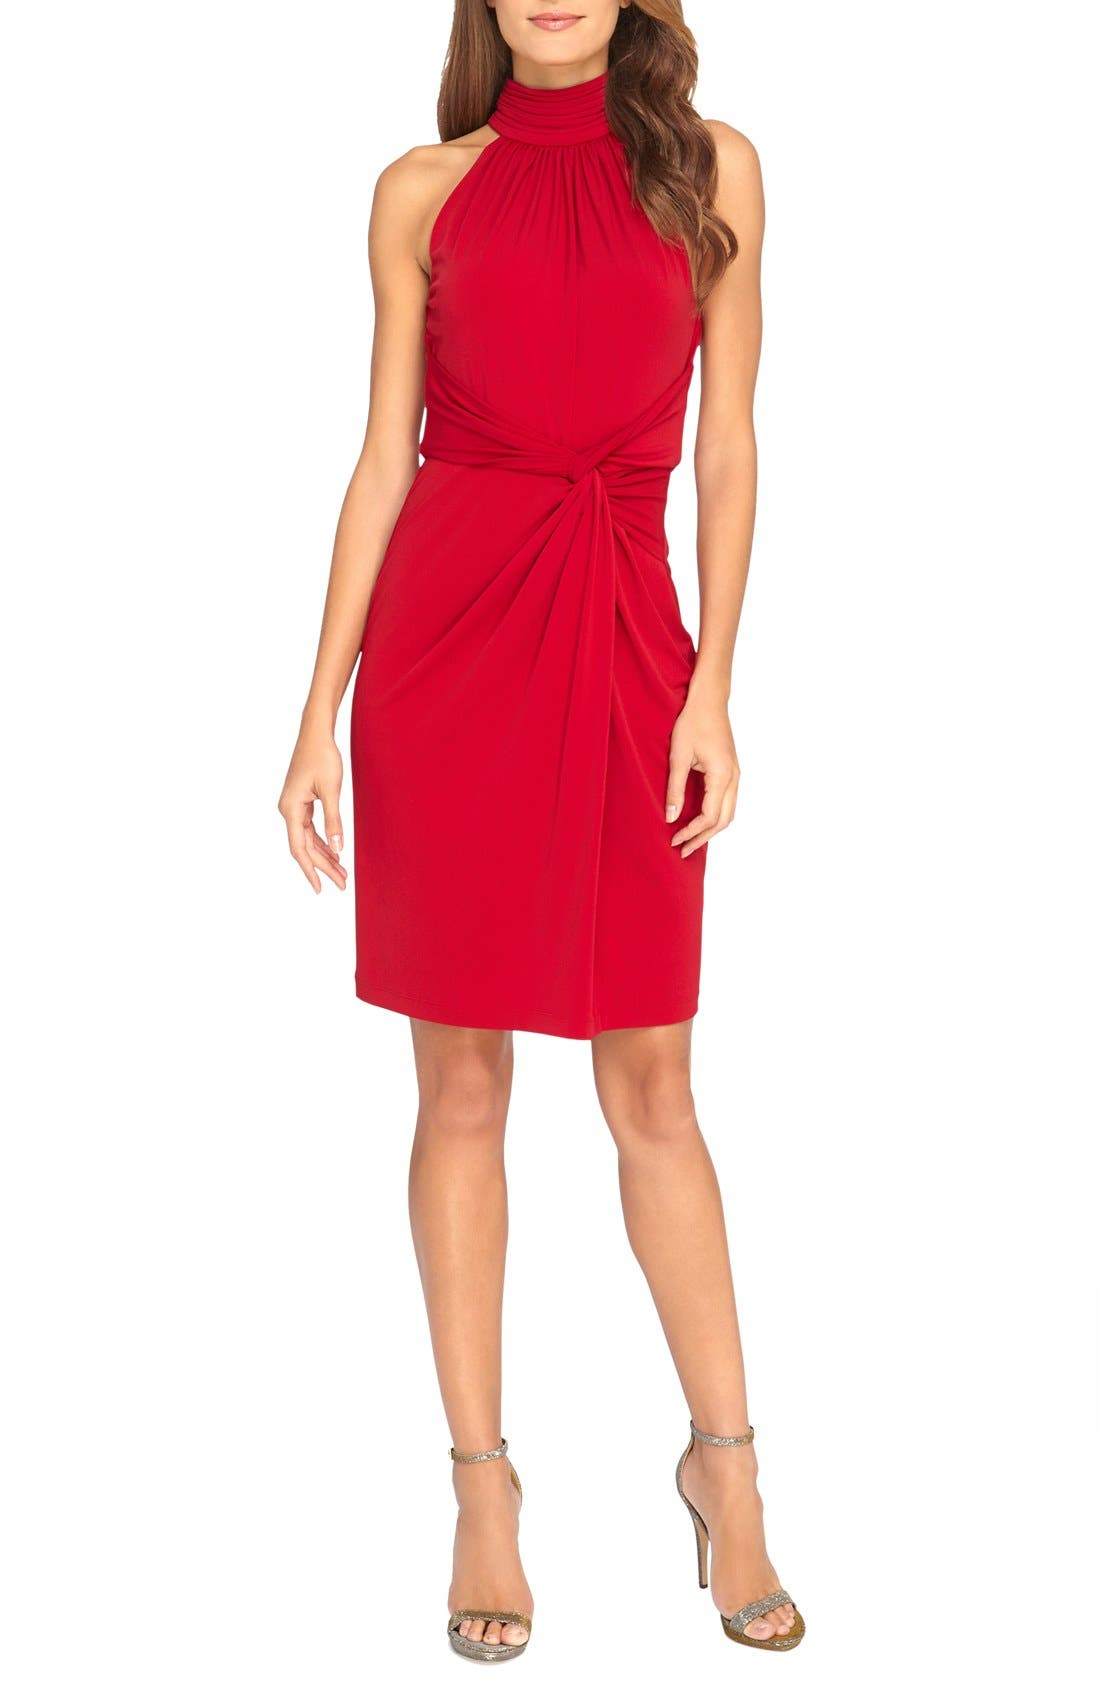 Main Image - Catherine Catherine Malandrino 'Jazz' Halter Style Twist Front Dress